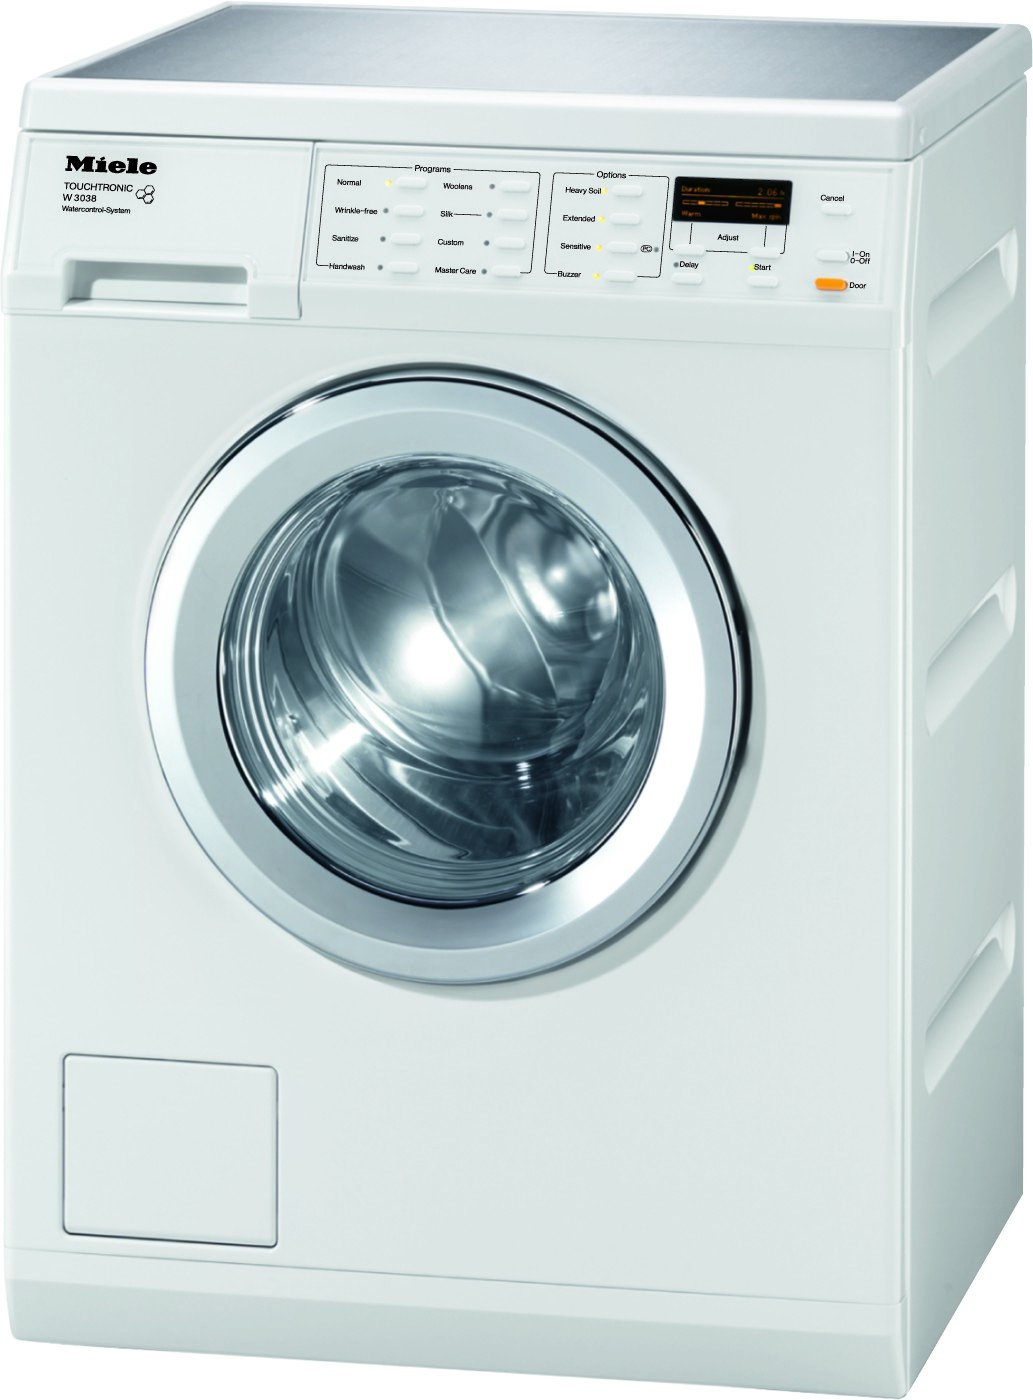 Miele stackable washer dryer ventless - Miele Stackable Washer Dryer Ventless 9